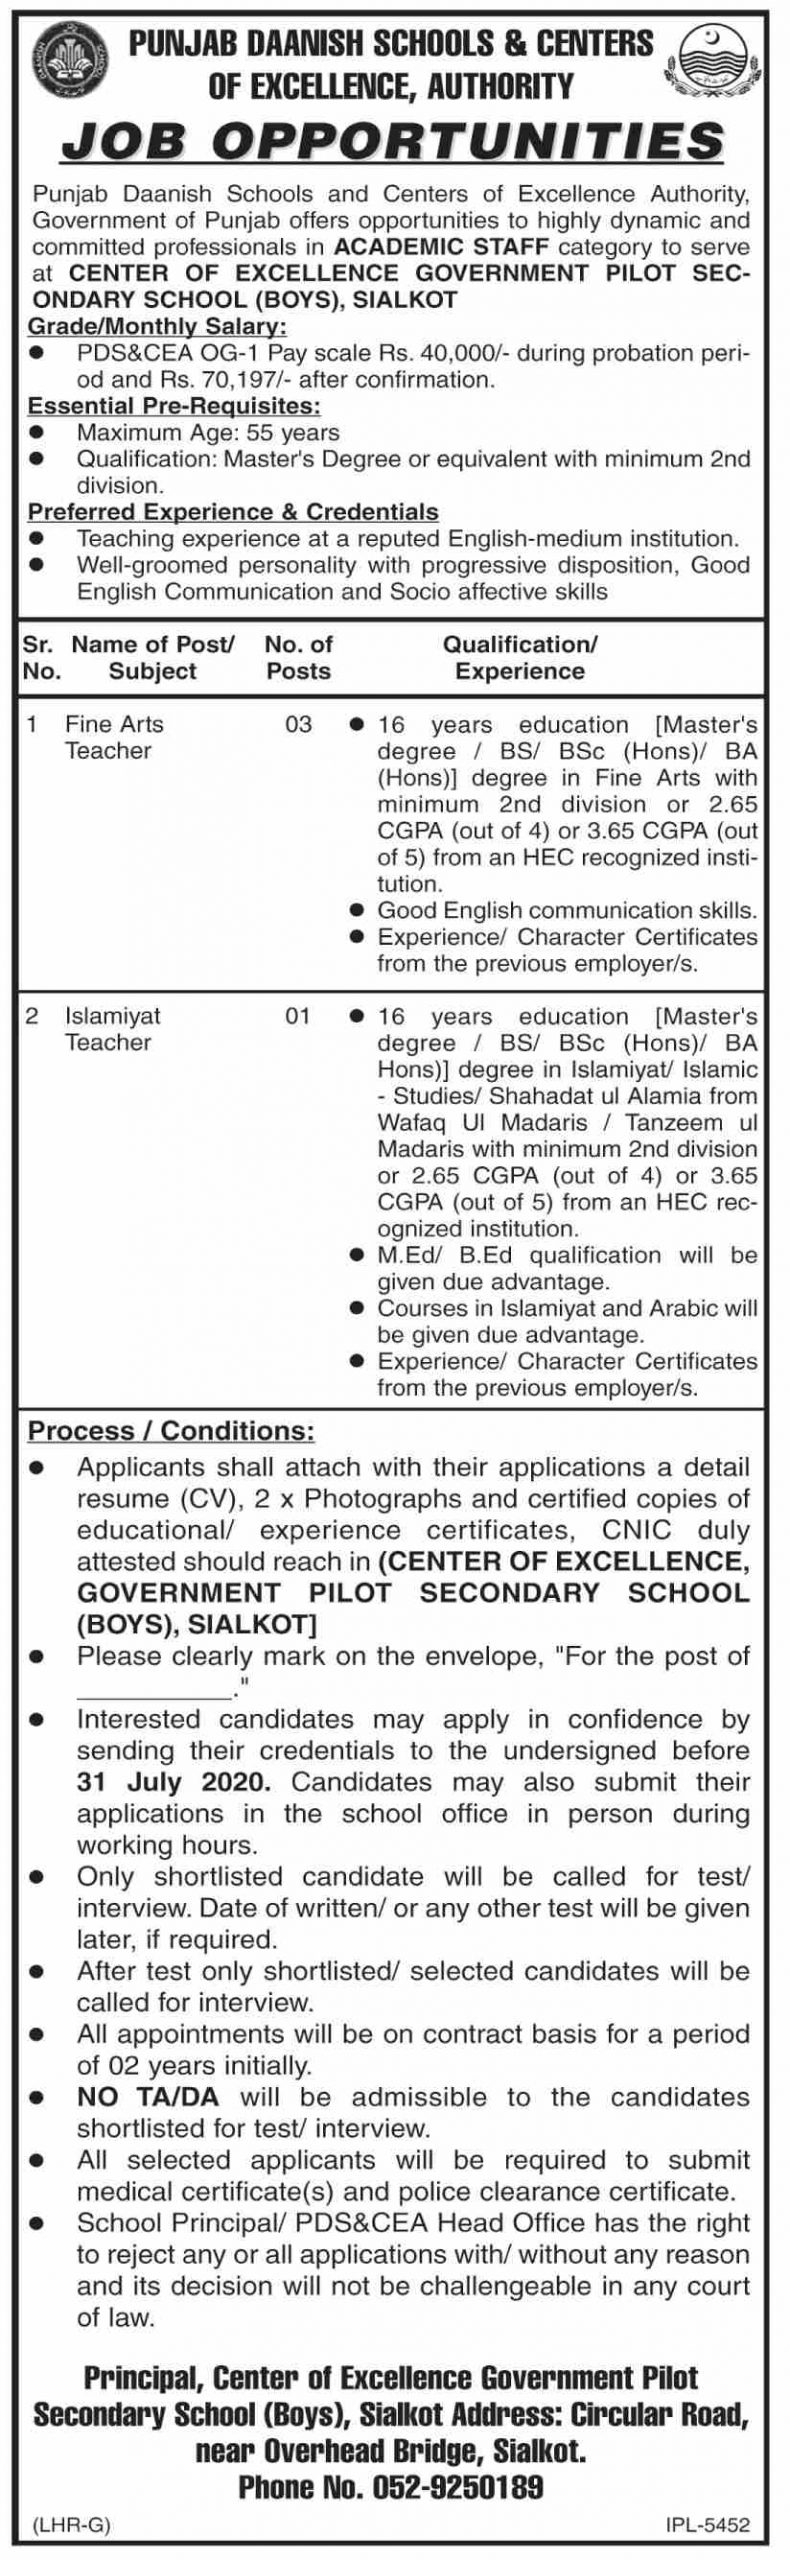 Jobs In Punjab Daanish Schools And Centers Of Excellence Authority 02 July 2020